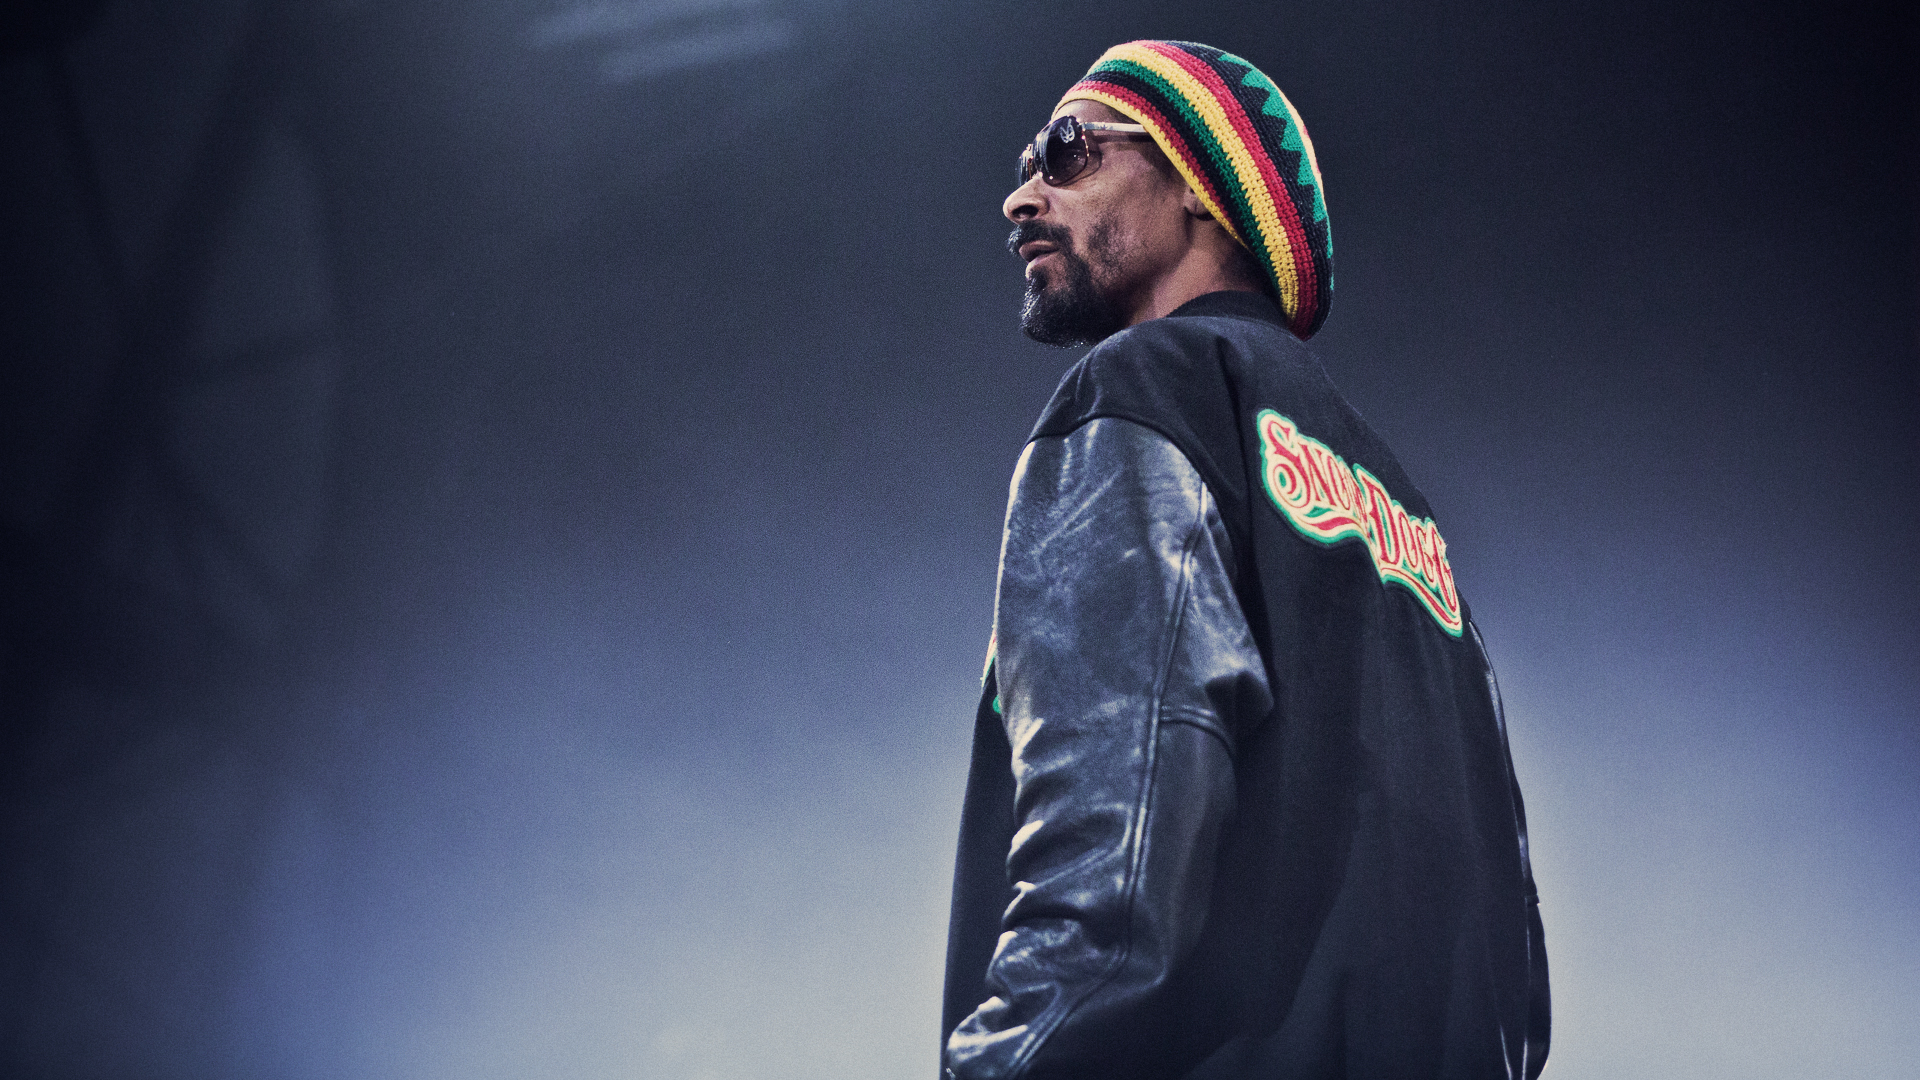 Snoop Dogg @ Hove